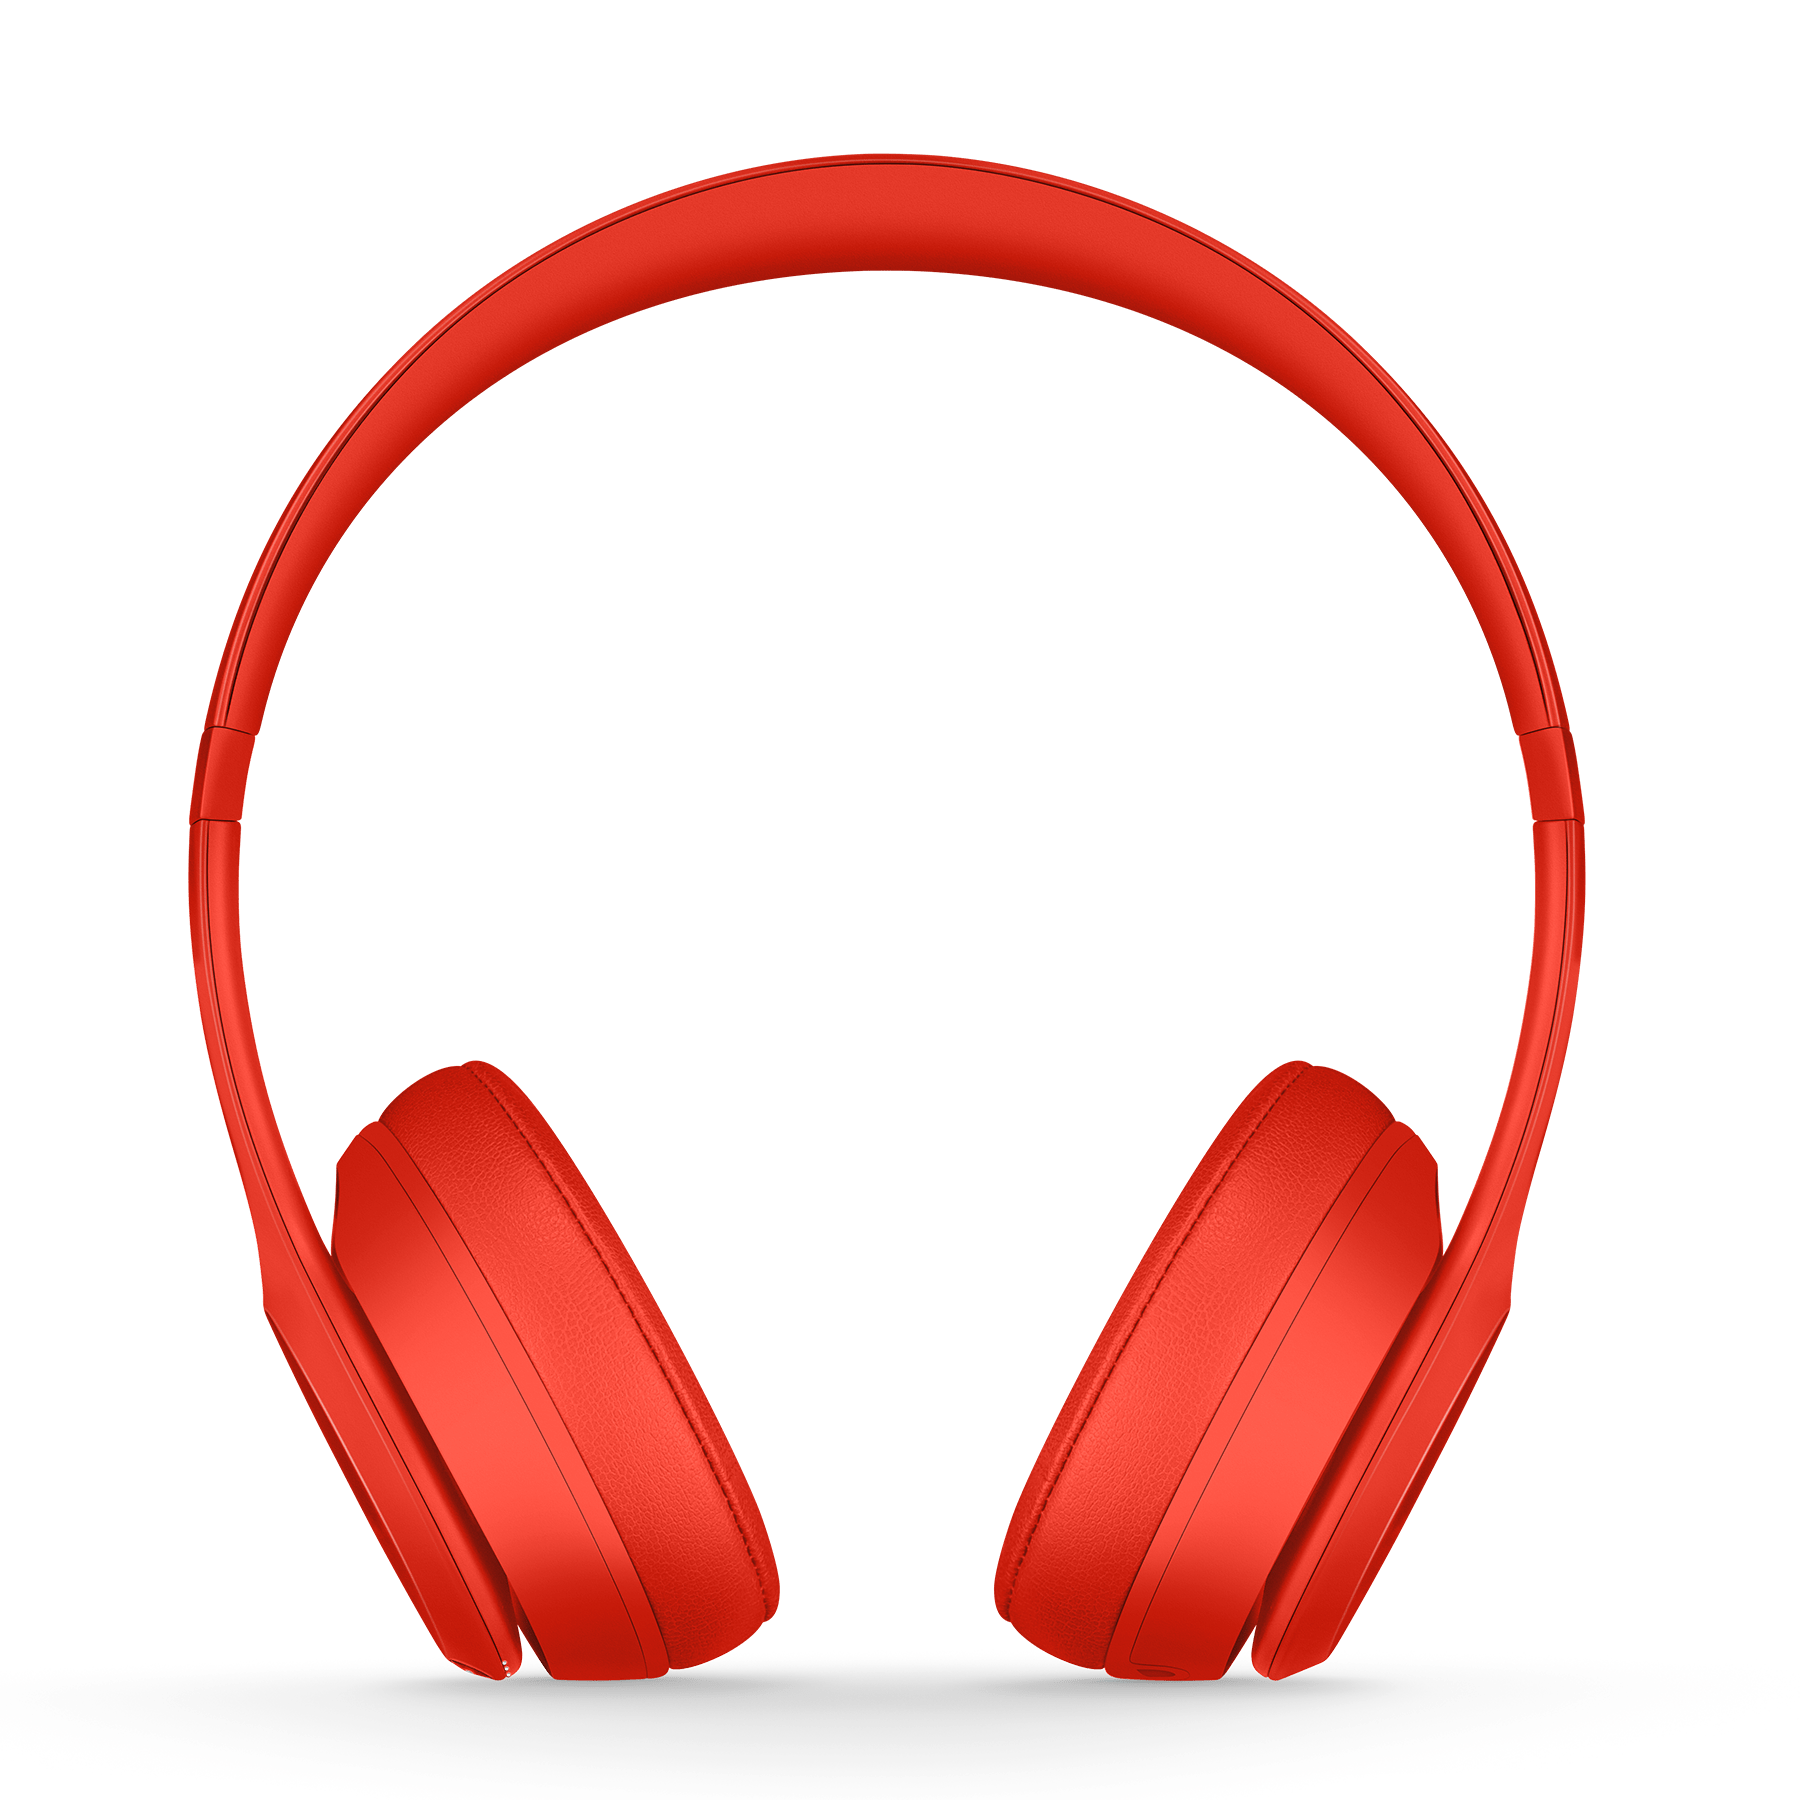 Music notes and headphone side view png. Beats solo wireless by